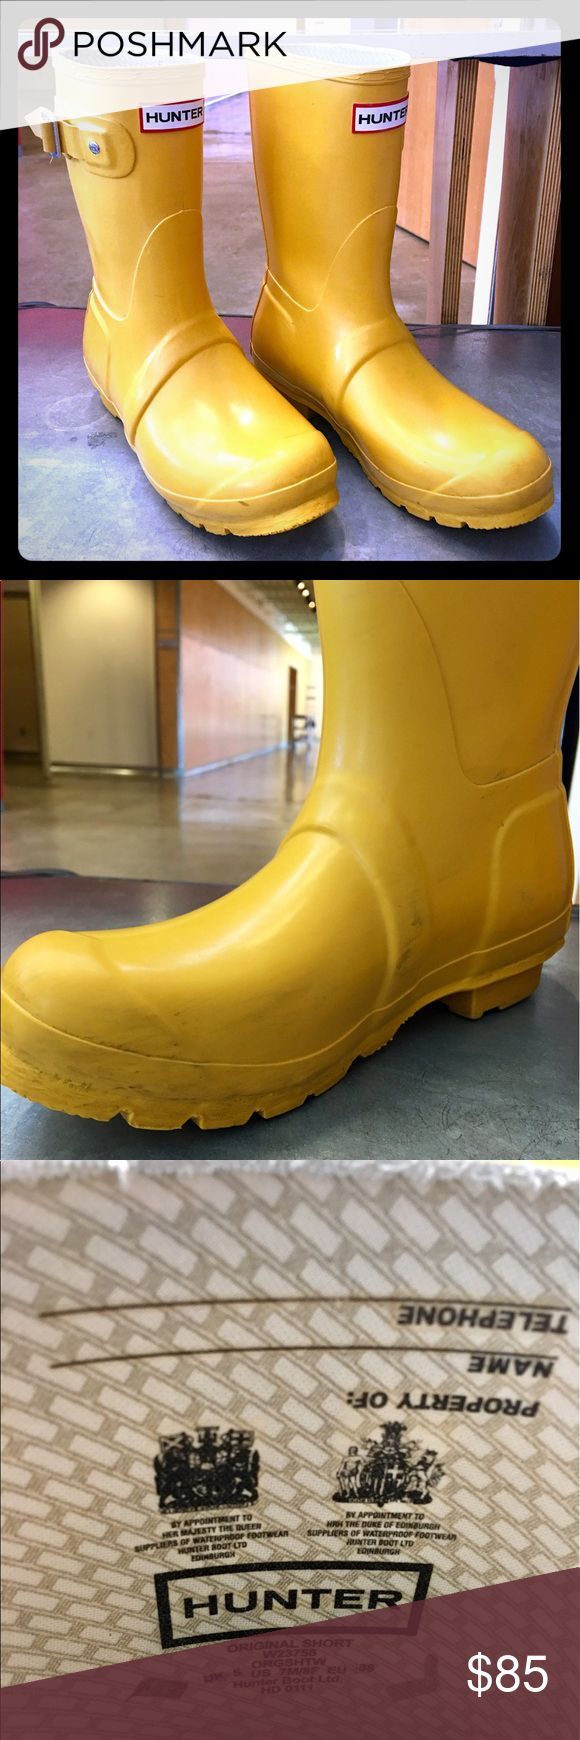 Hunter Original Short Boots Size 7/8. I'm a 7 and they're a little big, so hardly worn. Great condition. Scuffs can very easily be removed. Hunter Shoes Winter & Rain Boots